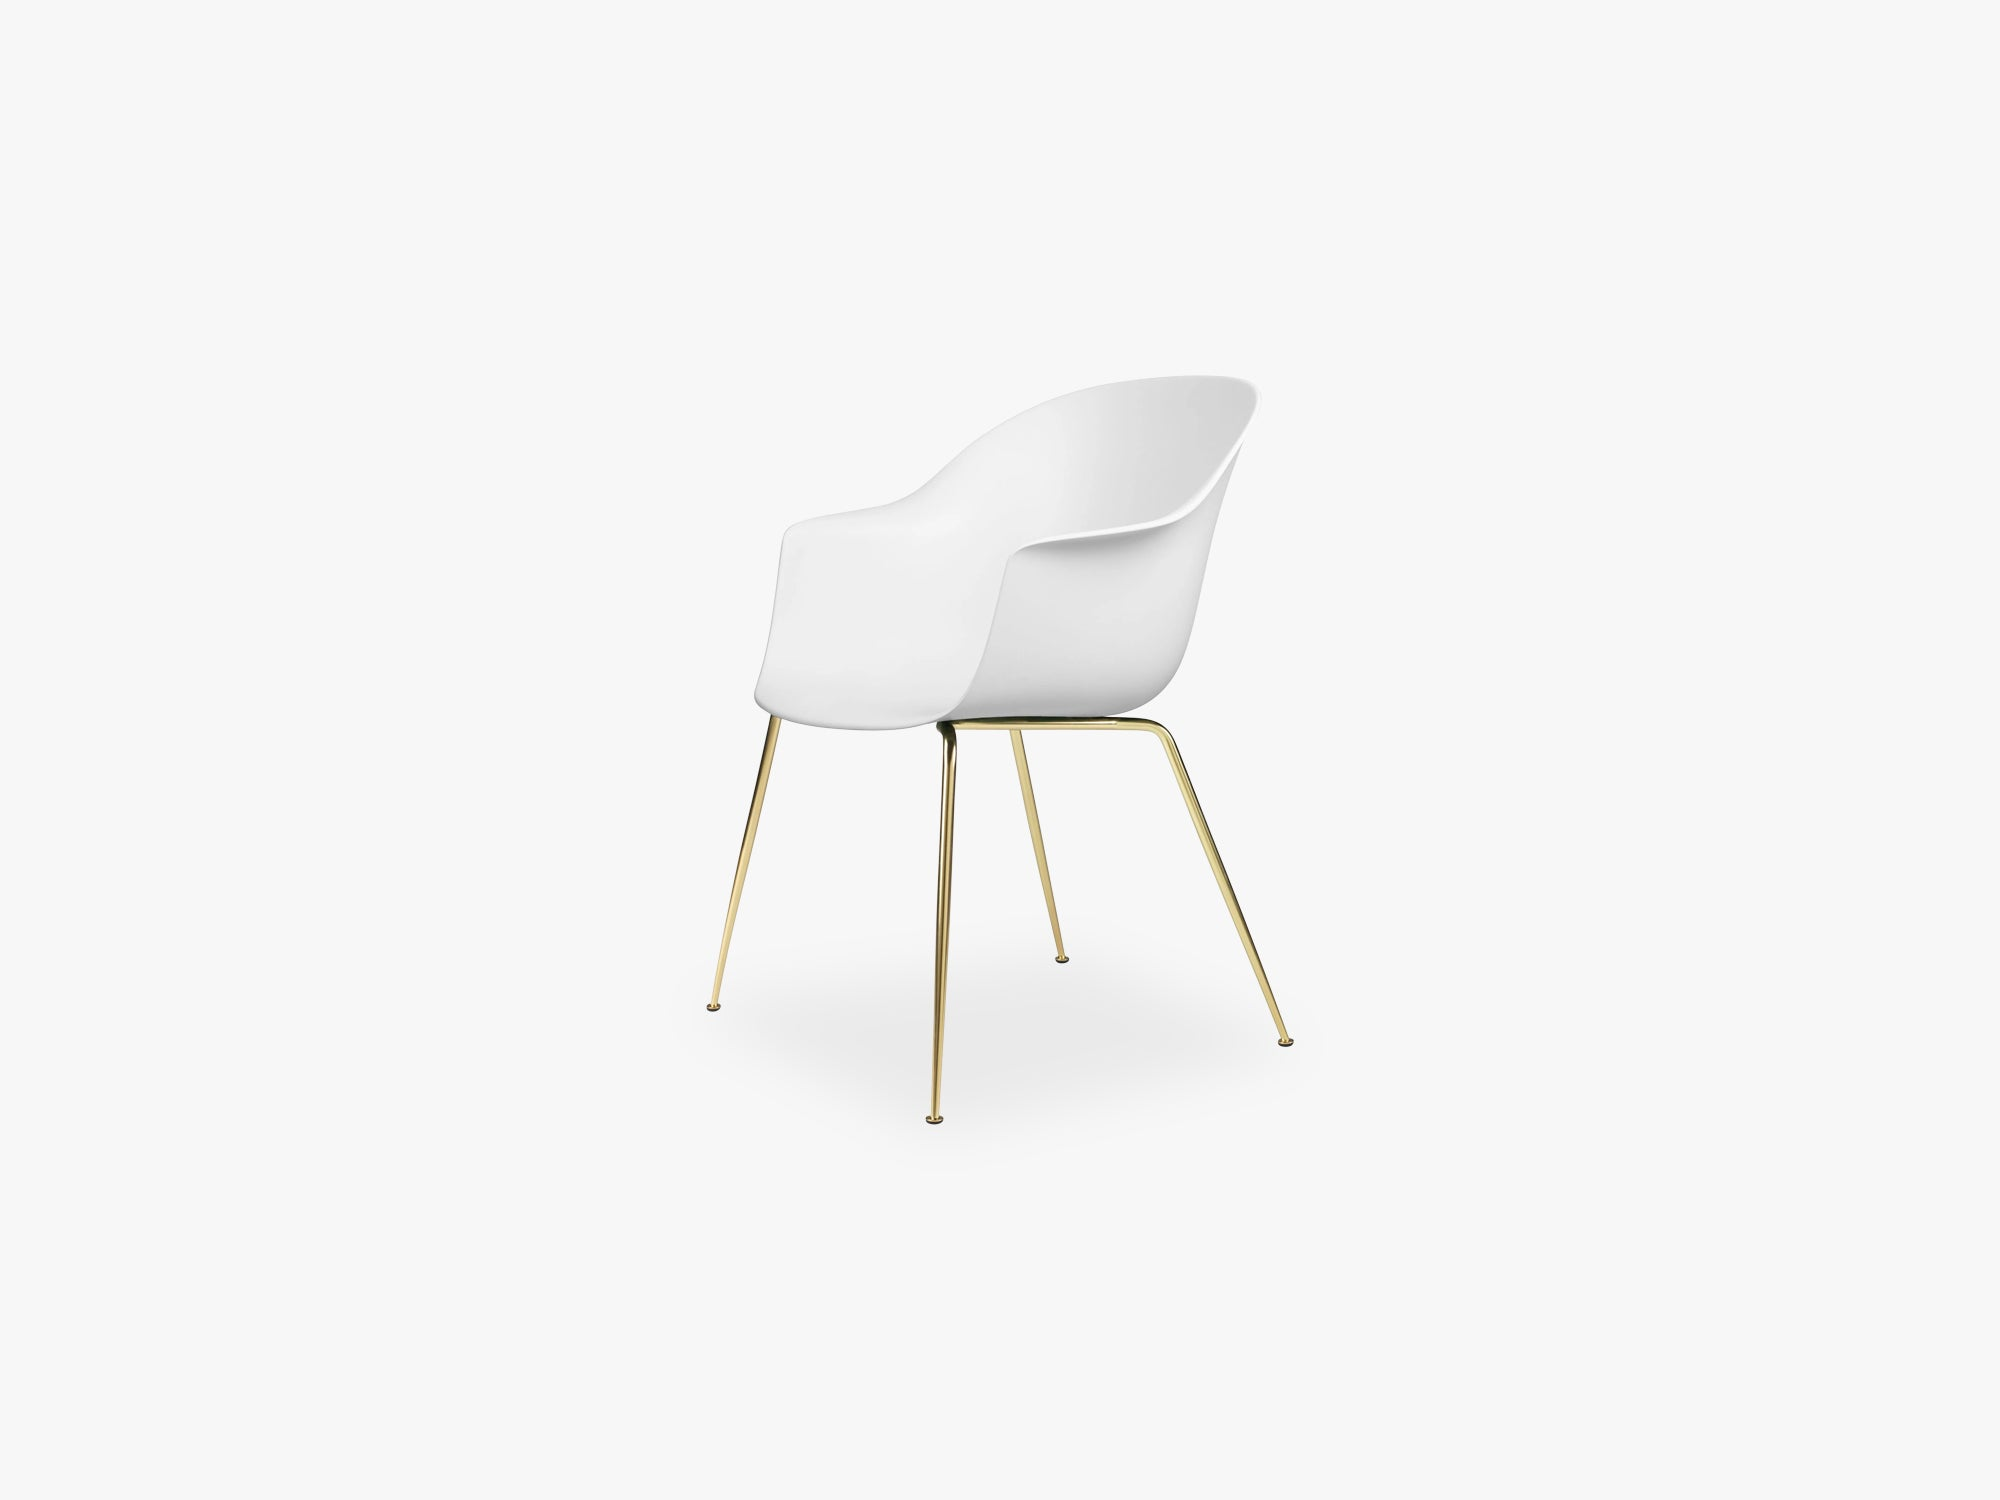 Bat Dining Chair - Skal m Conic base - Brass Semi Matt, Pure White fra GUBI